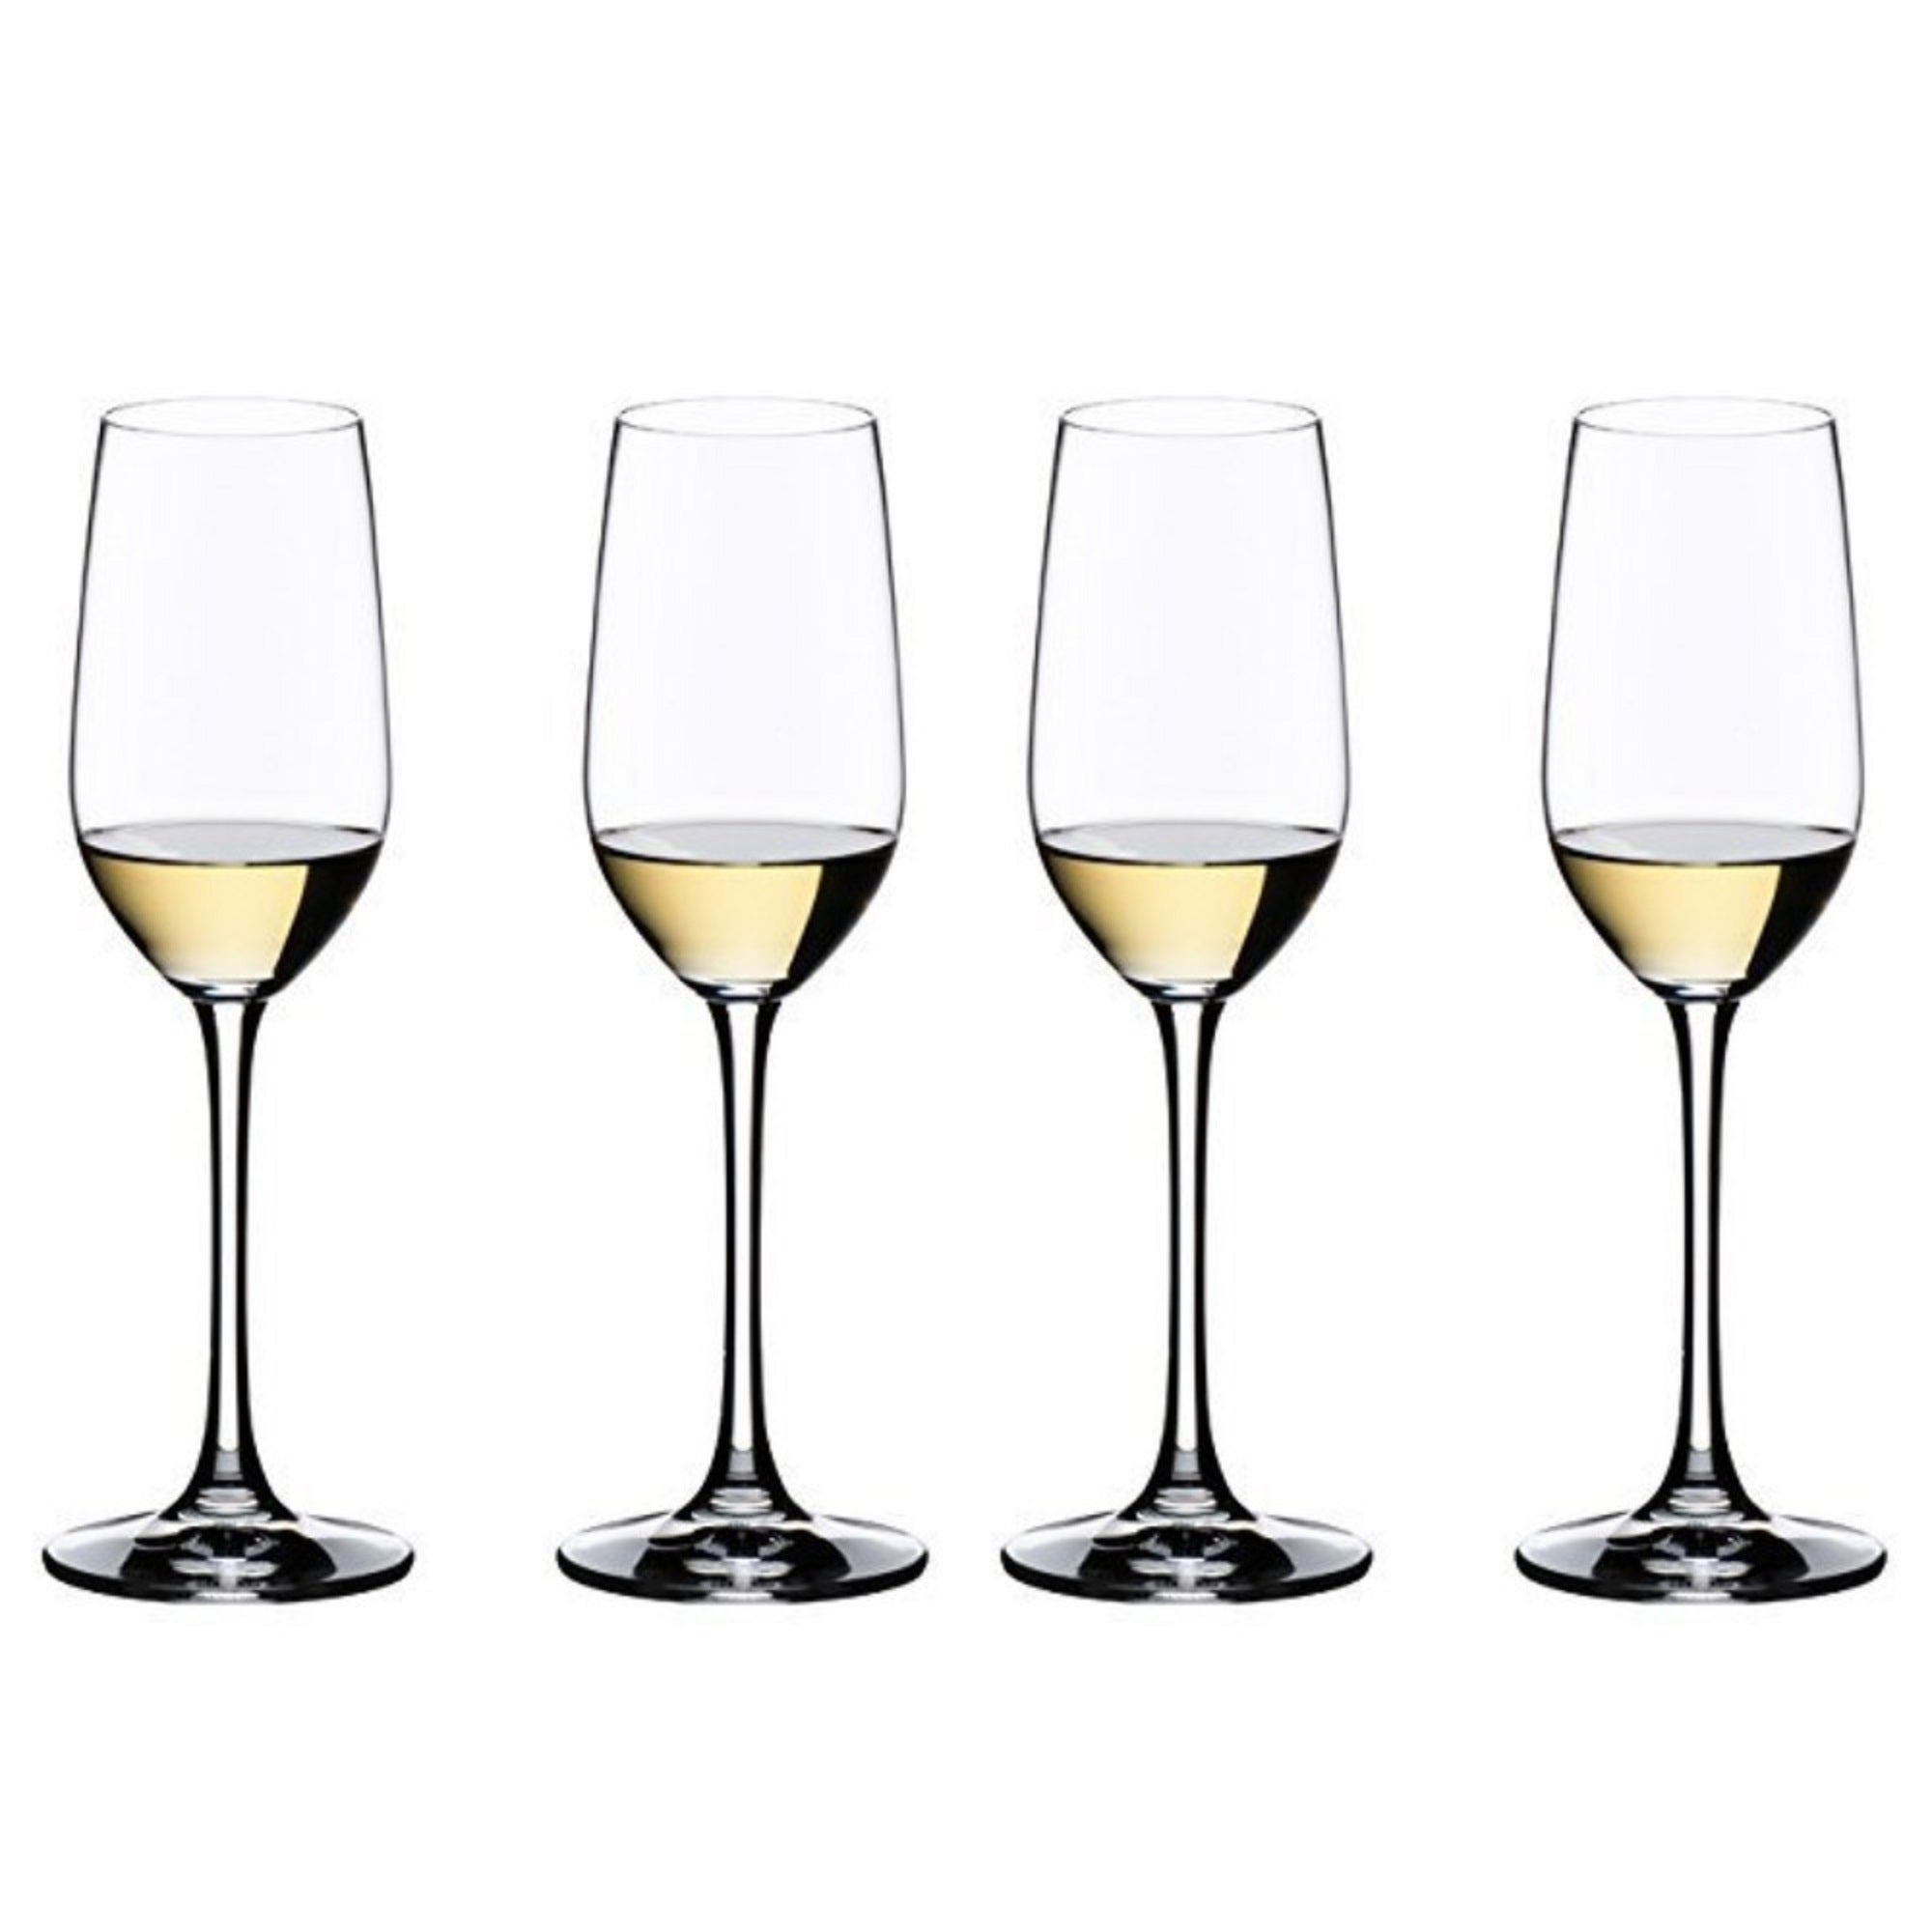 Riedel Ouverture Spirits Bar Glass Set of 6